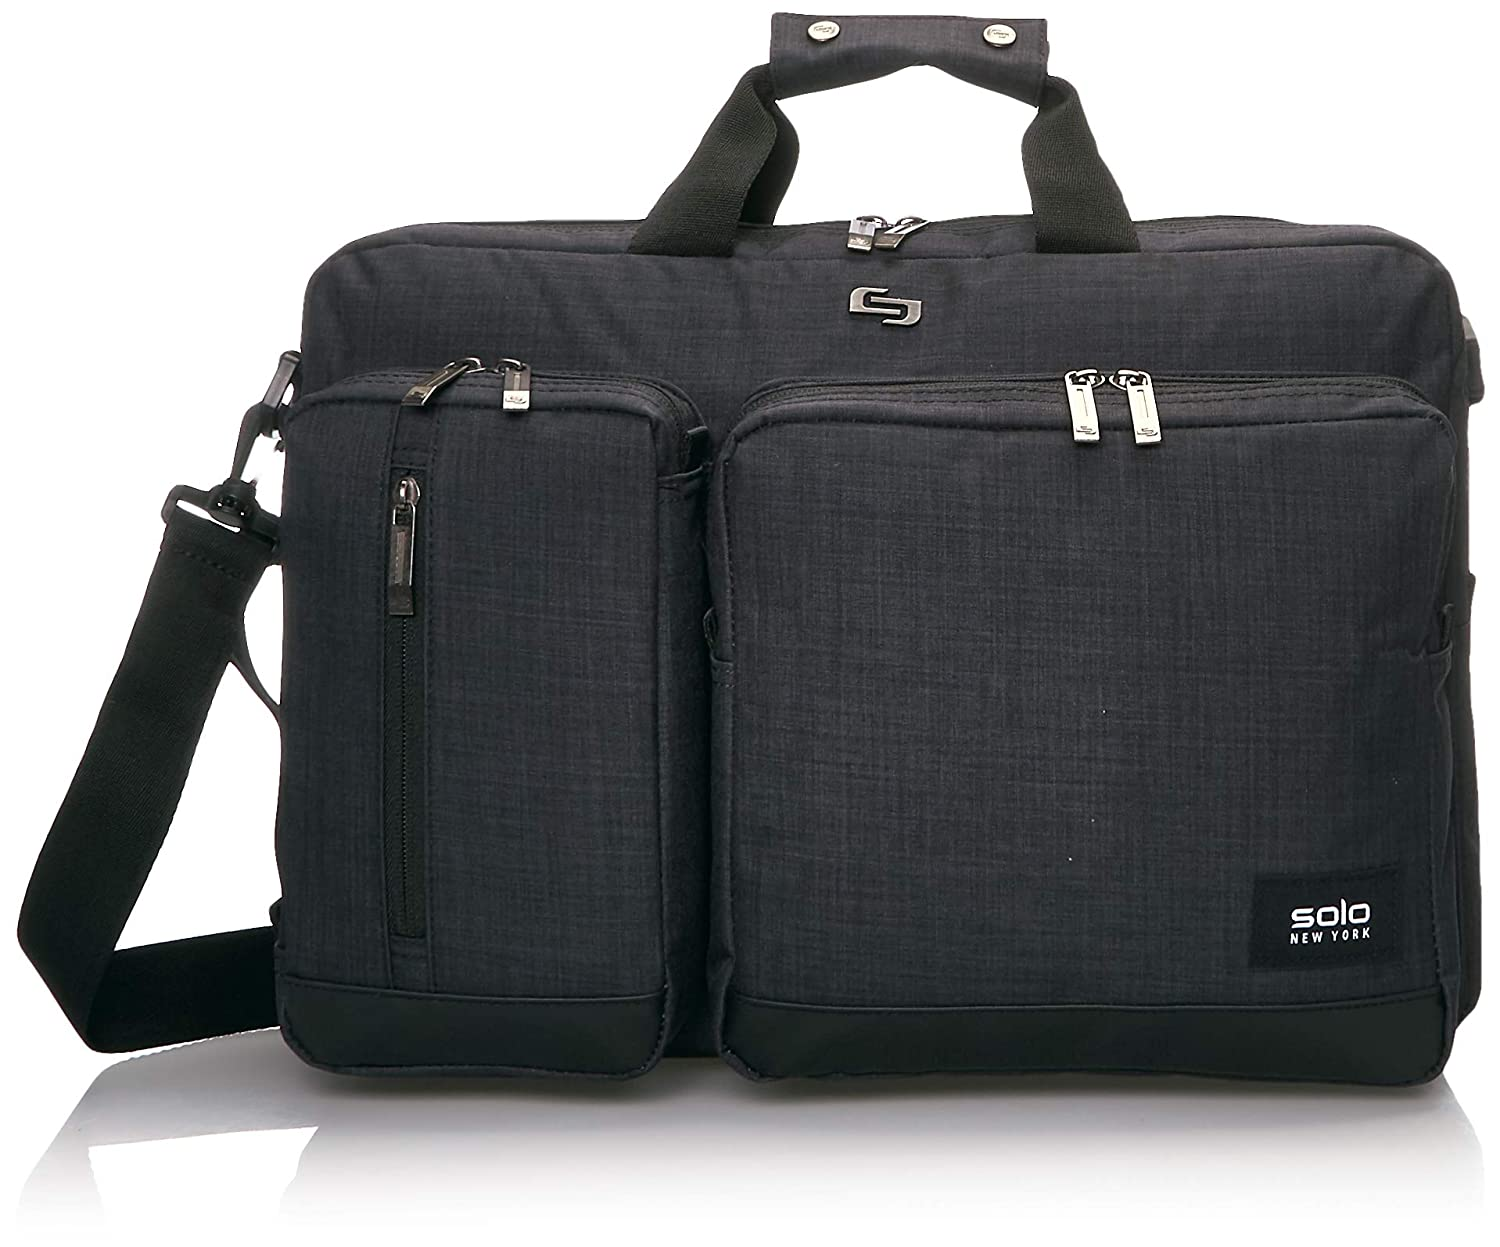 Solo Duane Convertible Briefcase. Fits Up to A 15.6-Inch Laptop. Converts To Backpack, Briefcase or Messenger Bag. Laptop Bag for Men or Women – Amazon Exclusive Slate